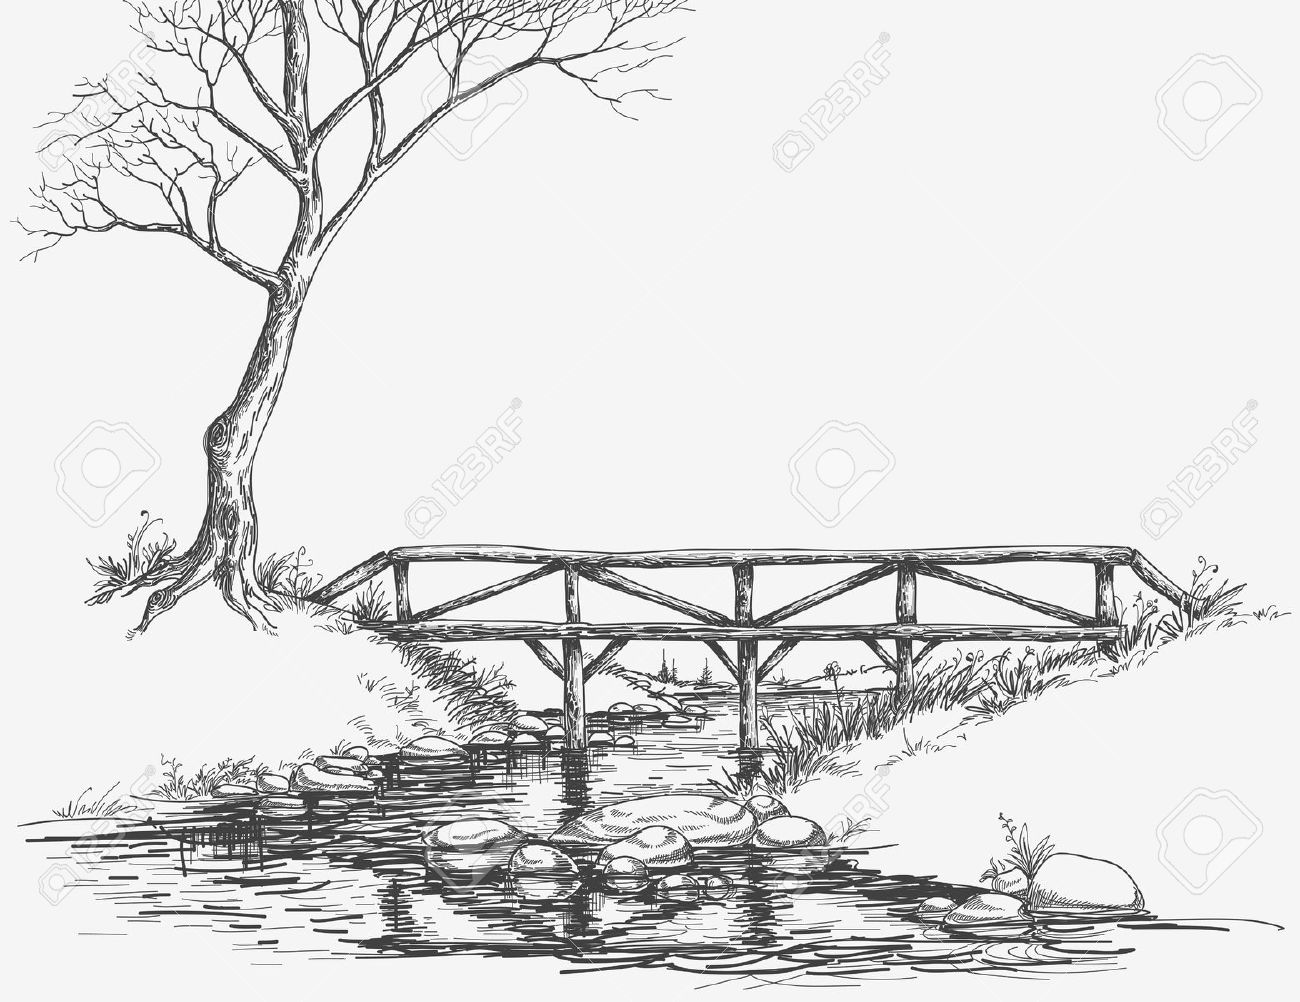 River bank clipart black and white clipart library library Bridge over river clipart black and white - ClipartFest clipart library library